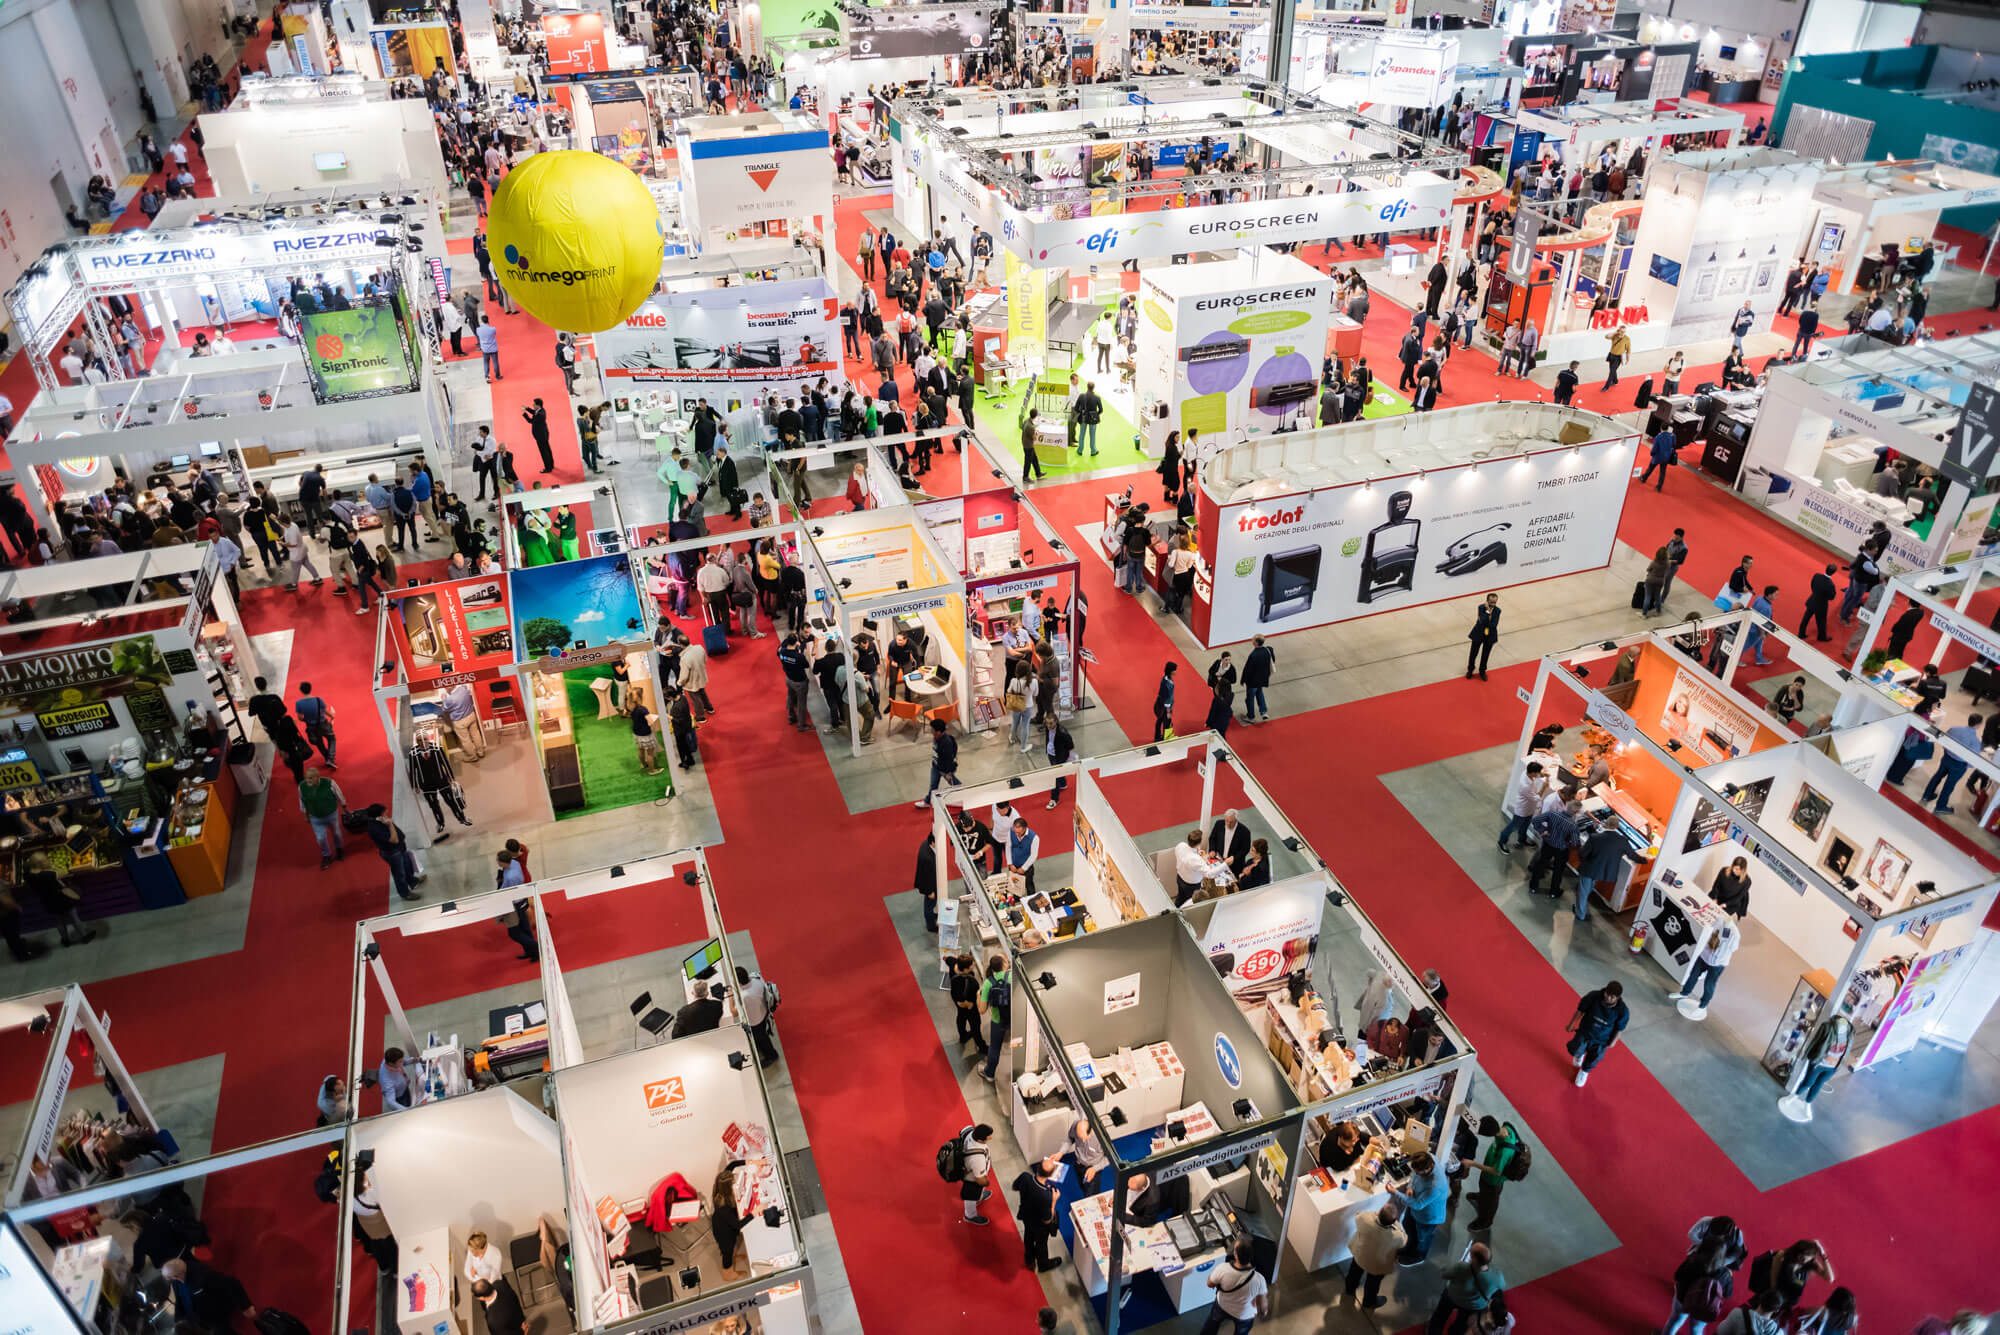 With so many biotechnology and pharma trade shows to choose from in 2019, we have compiled our list of the top events to help you grow your business.